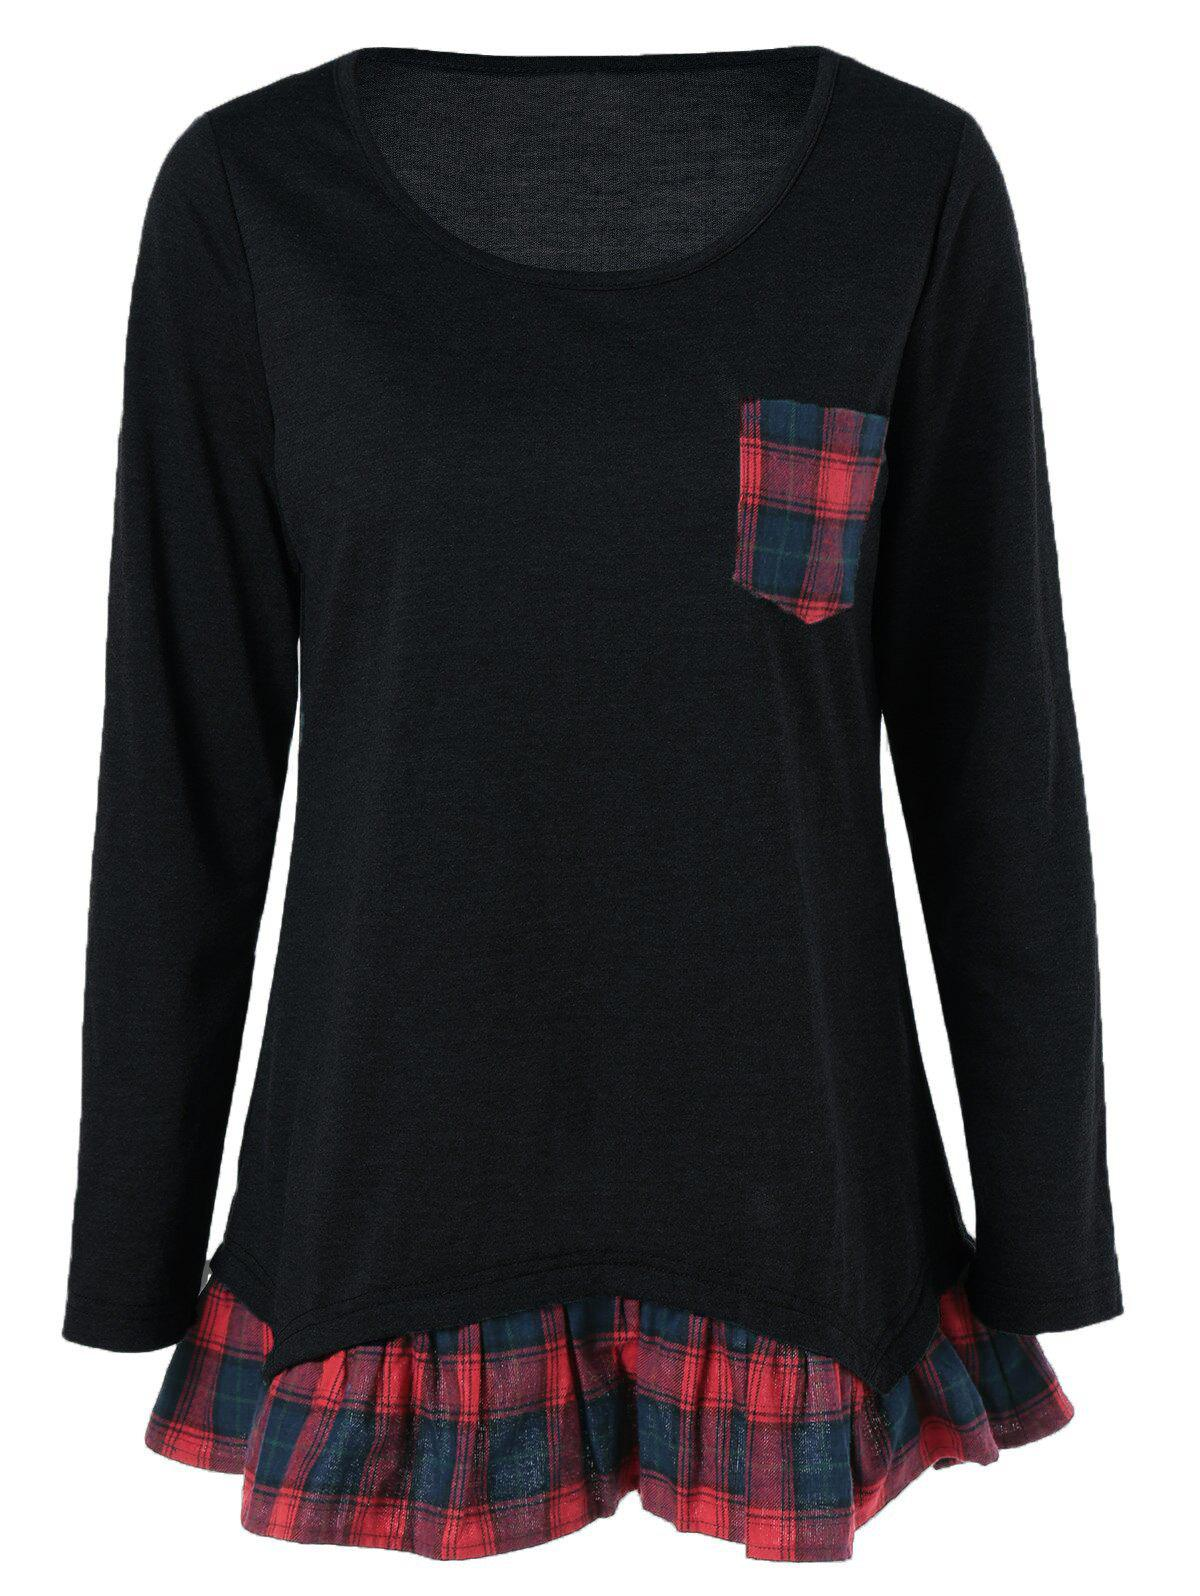 Plaid Print Pocket Falbala BlouseWOMEN<br><br>Size: XL; Color: BLACK; Style: Casual; Material: Polyester; Shirt Length: Long; Sleeve Length: Full; Collar: Scoop Neck; Pattern Type: Plaid; Season: Fall,Spring,Summer; Weight: 0.370kg; Package Contents: 1 x Blouse;